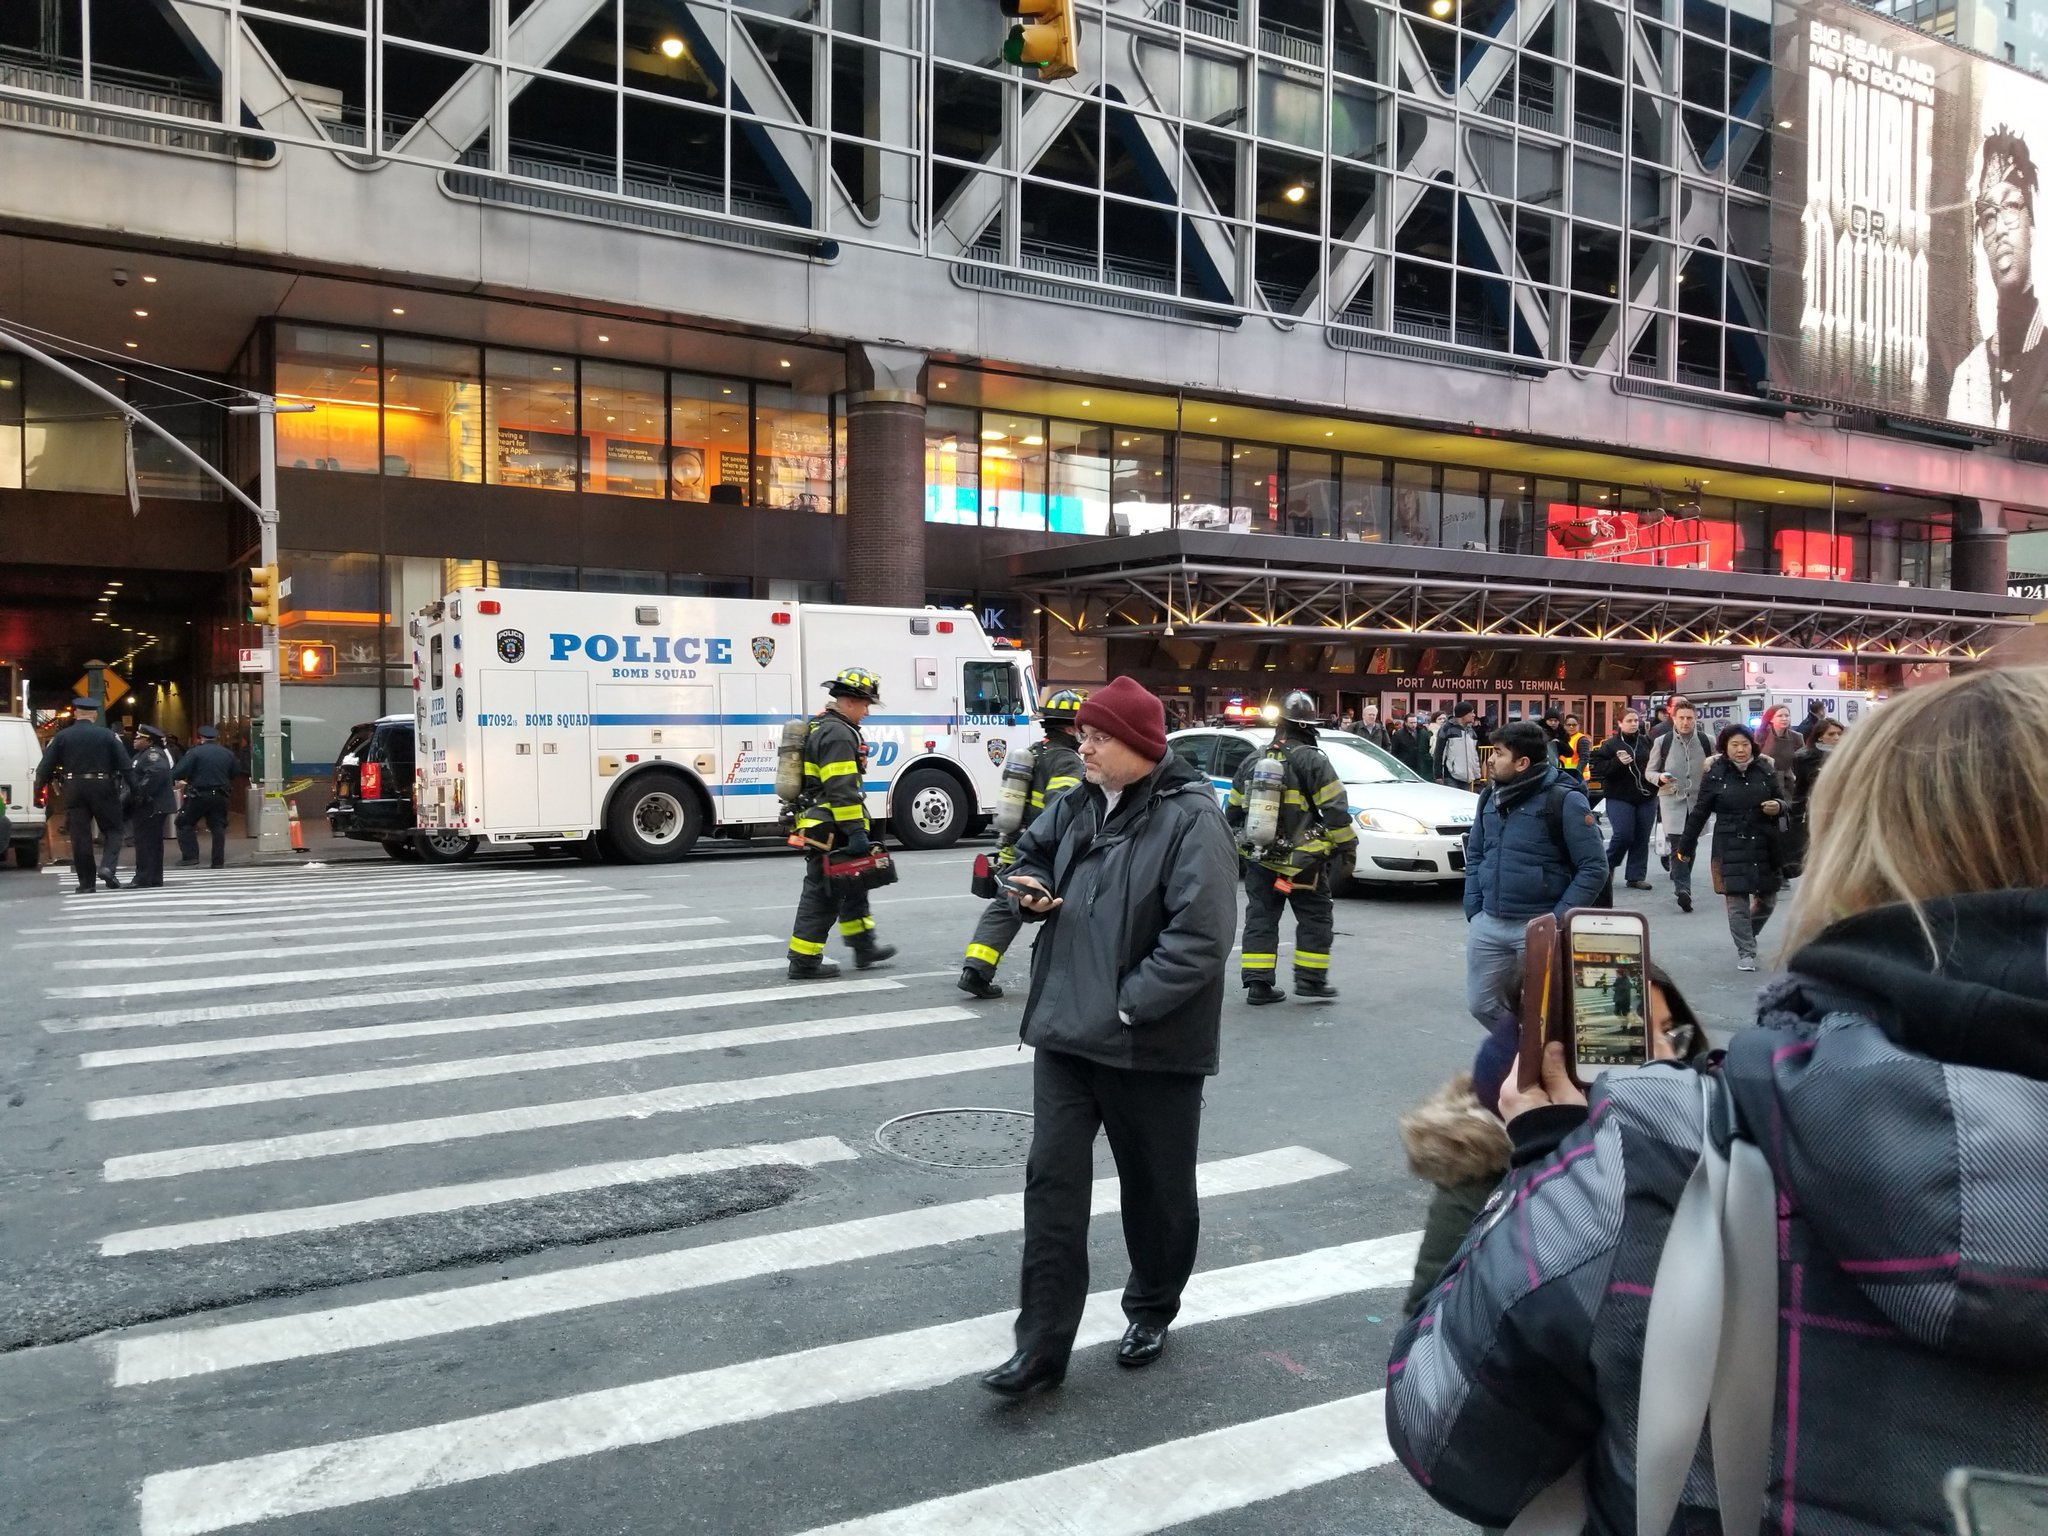 "<div class=""meta image-caption""><div class=""origin-logo origin-image wabc""><span>WABC</span></div><span class=""caption-text"">Photos from the scene of a pipe bomb explosion at the Port Authority Bus Terminal in Manhattan, New York City. (Bill Sweet via Twitter)</span></div>"